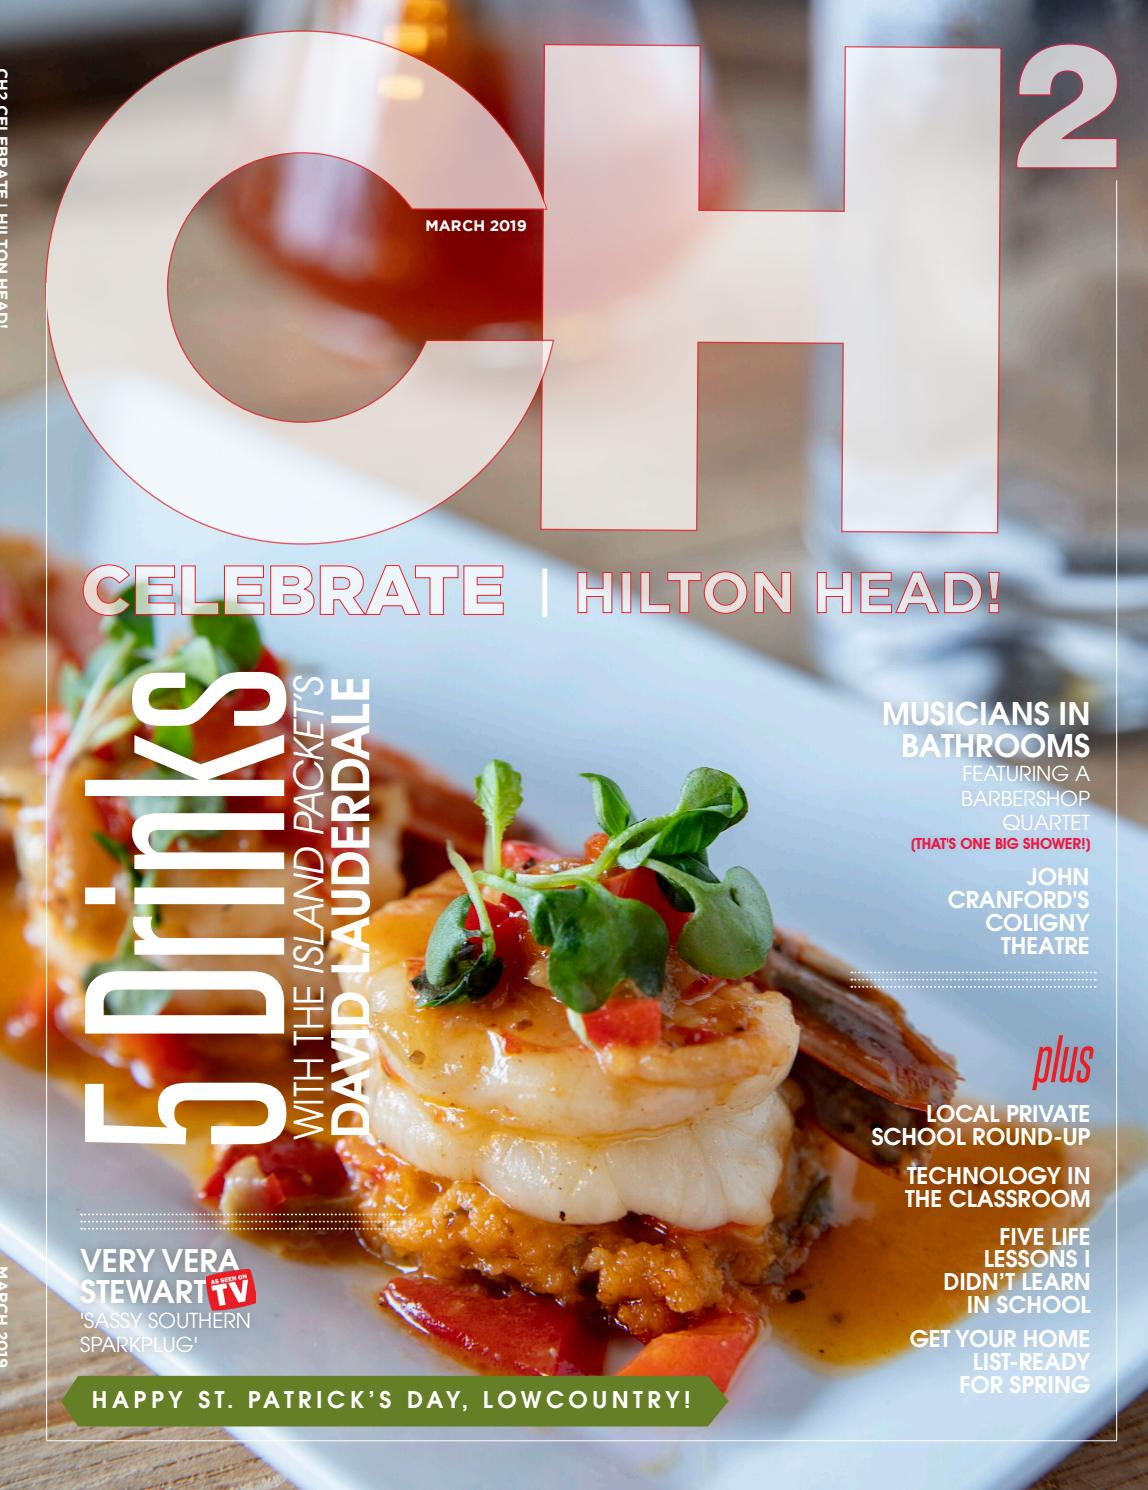 Celebrate bluffton beyond and celebrate hilton head march 2019 issue by ch2 cb2 issuu